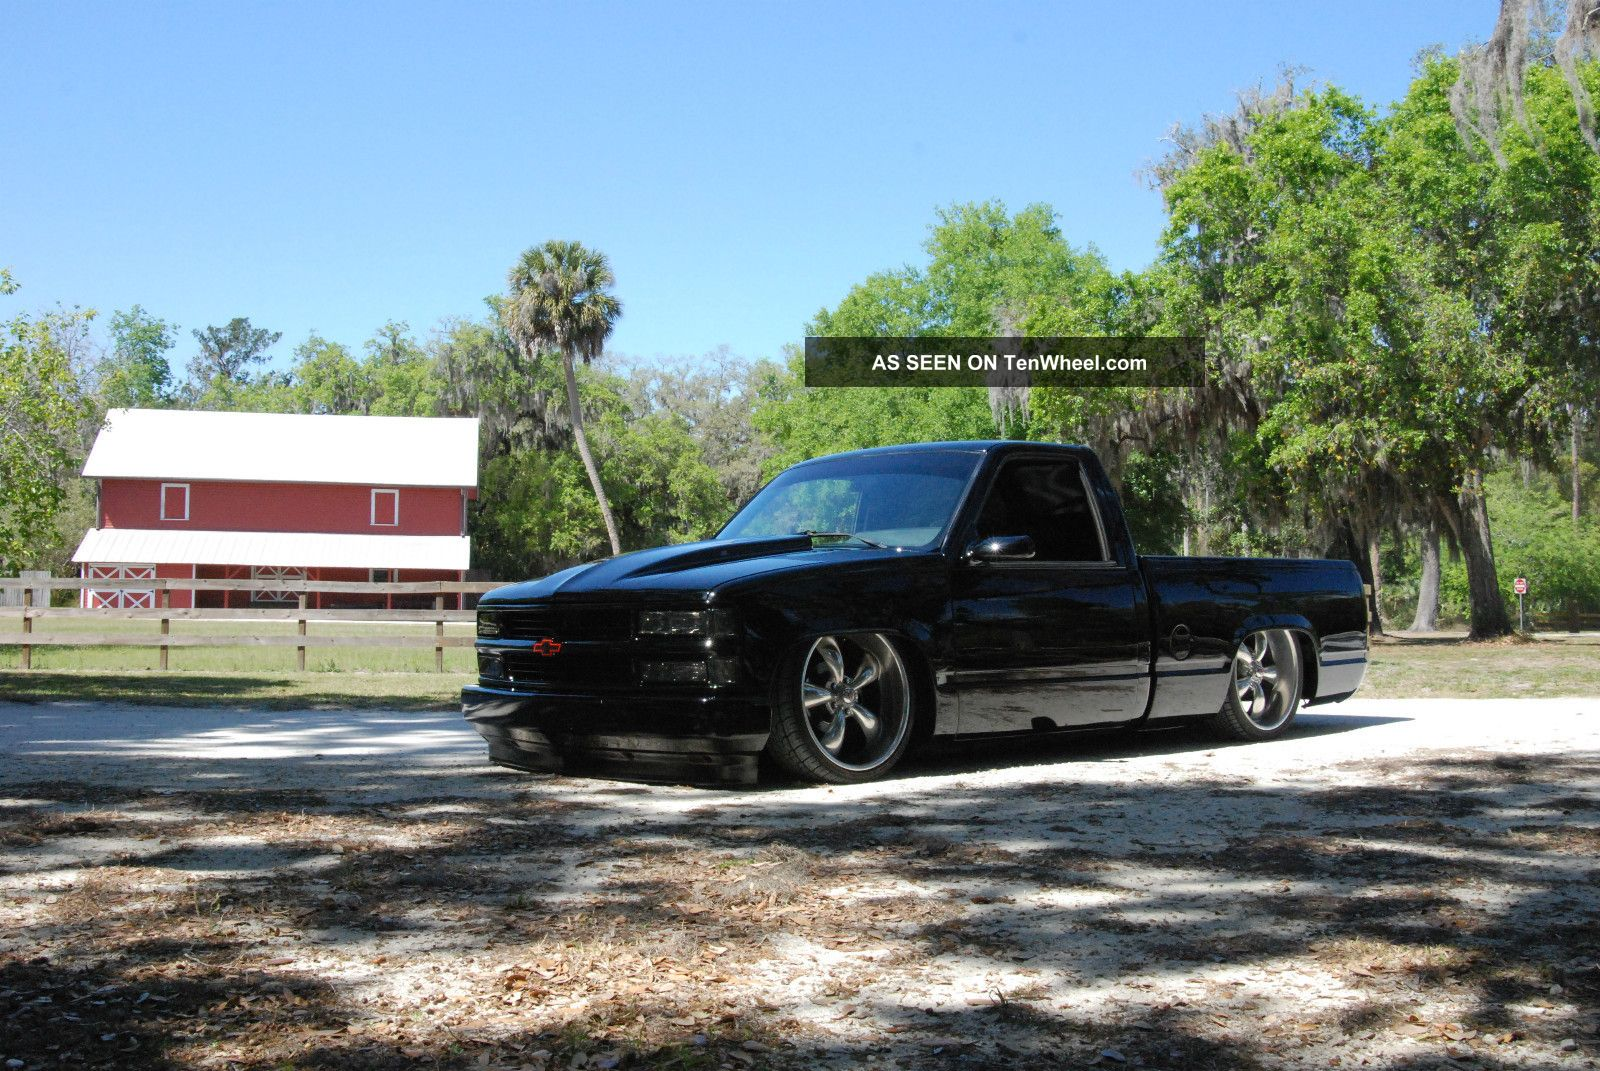 1988 Chevrolet Silverado 1500 Bagged Lowered Custom Hotrod Paint Gmc Sierra Wiring Diagram Free Engine Image For User